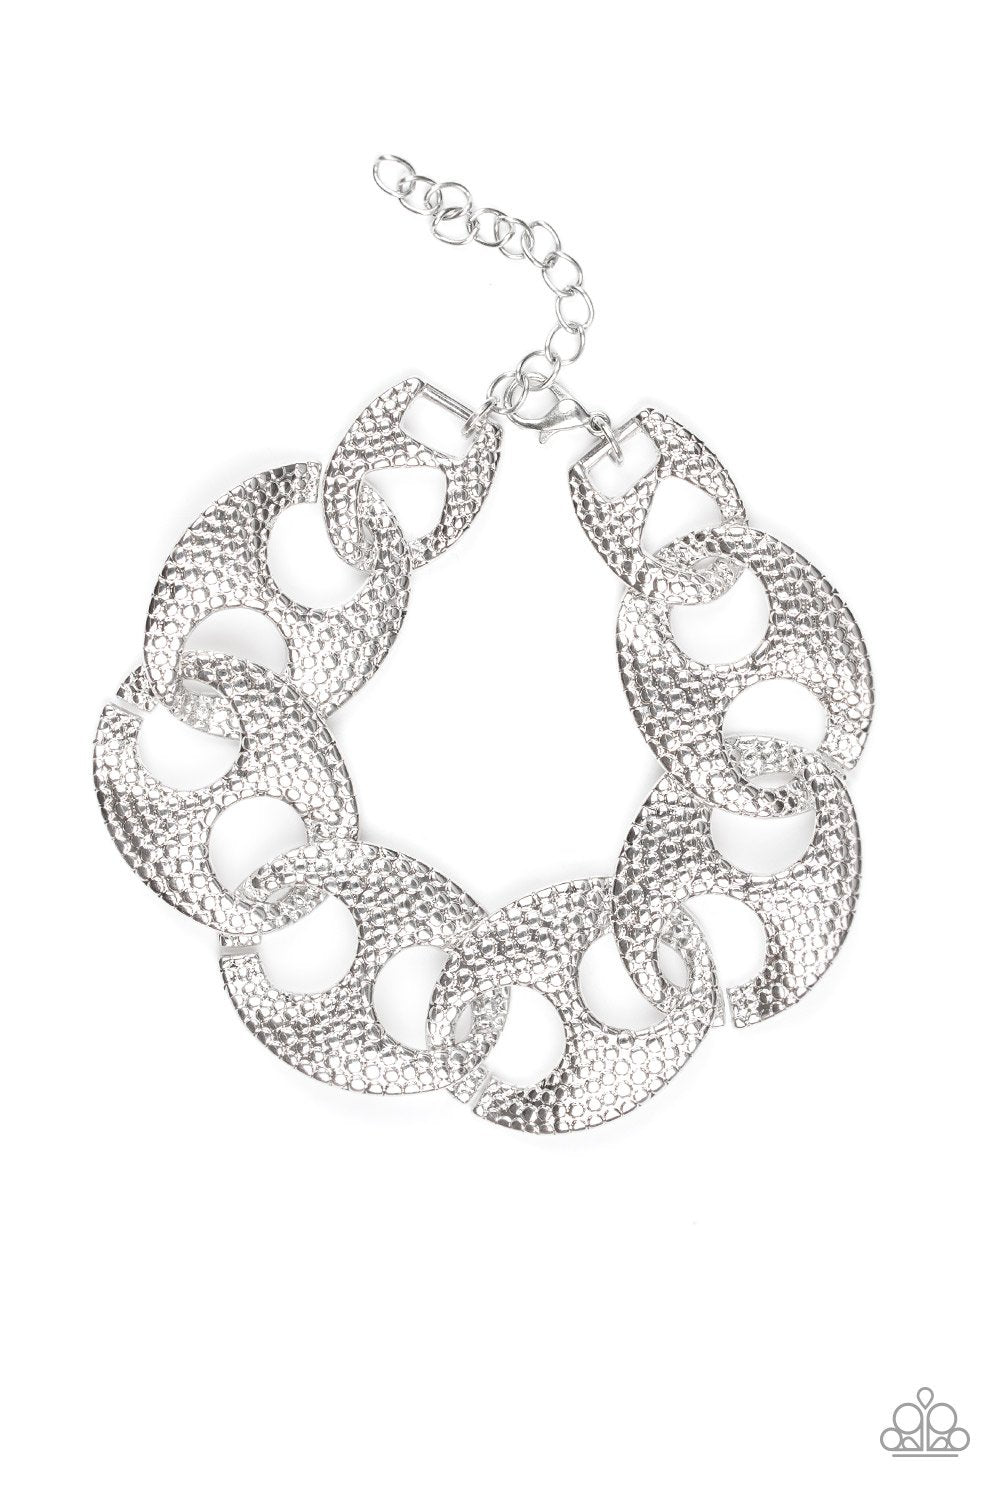 Paparazzi Accessories ~ Casual Connoisseur - Silver